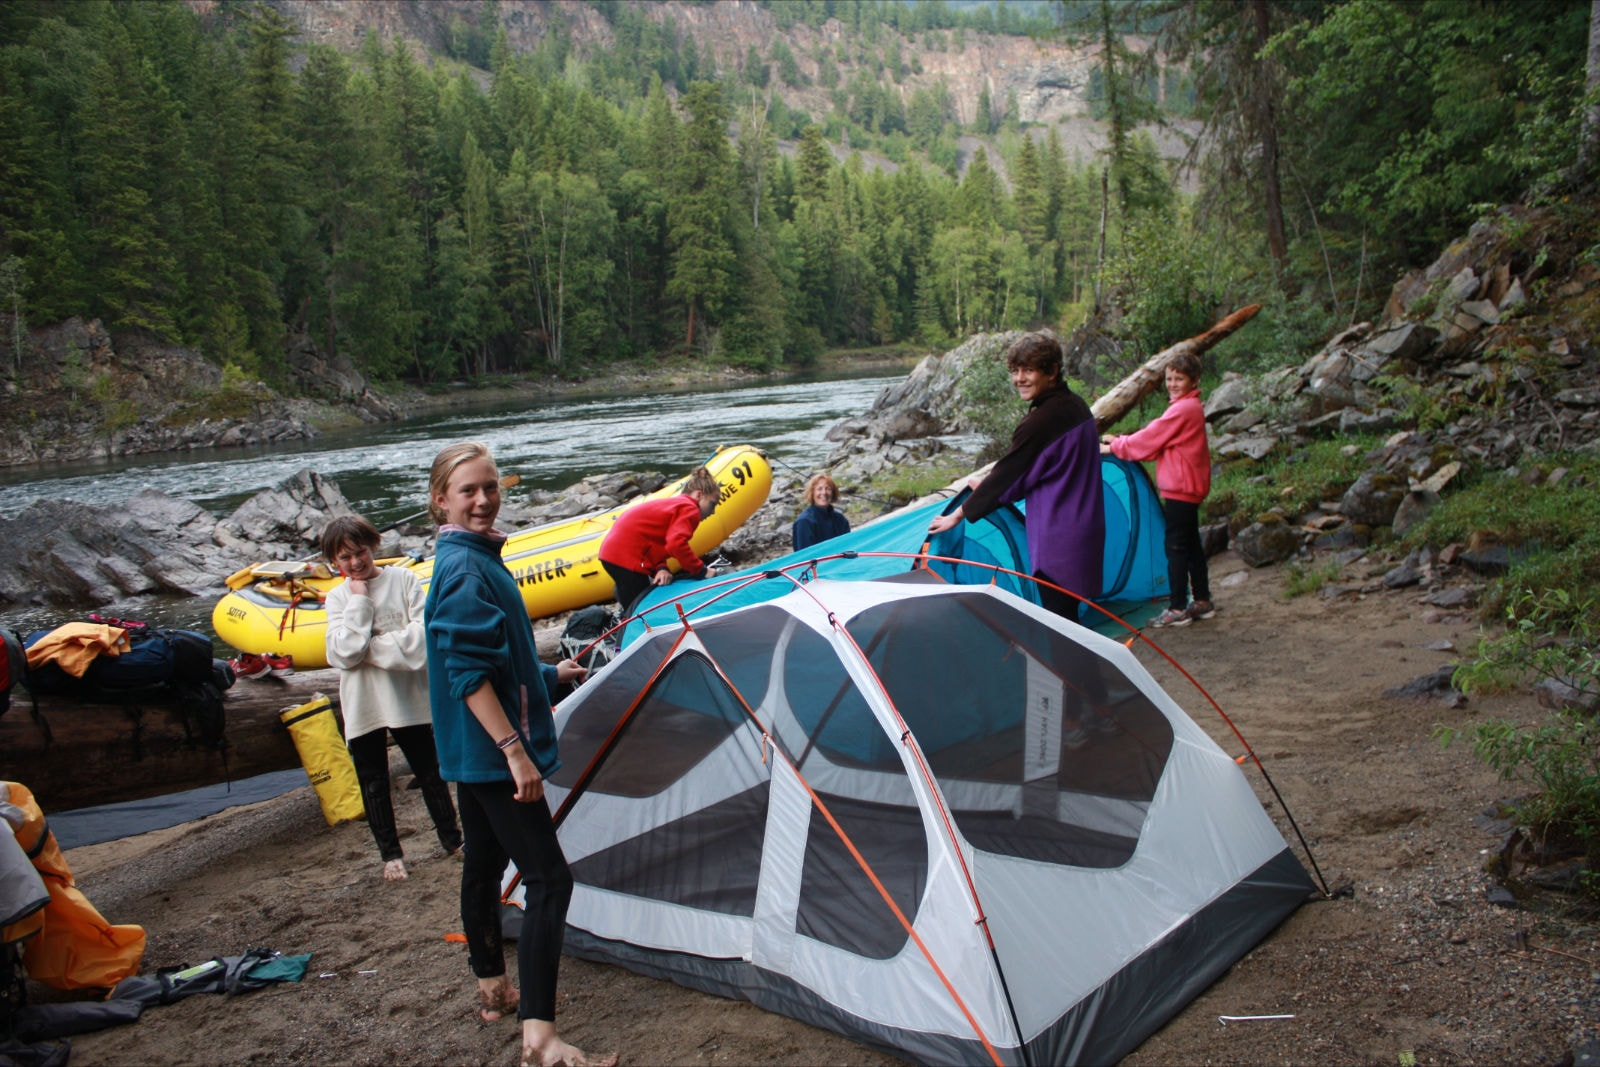 Interior Whitewater Expeditions Ltd.